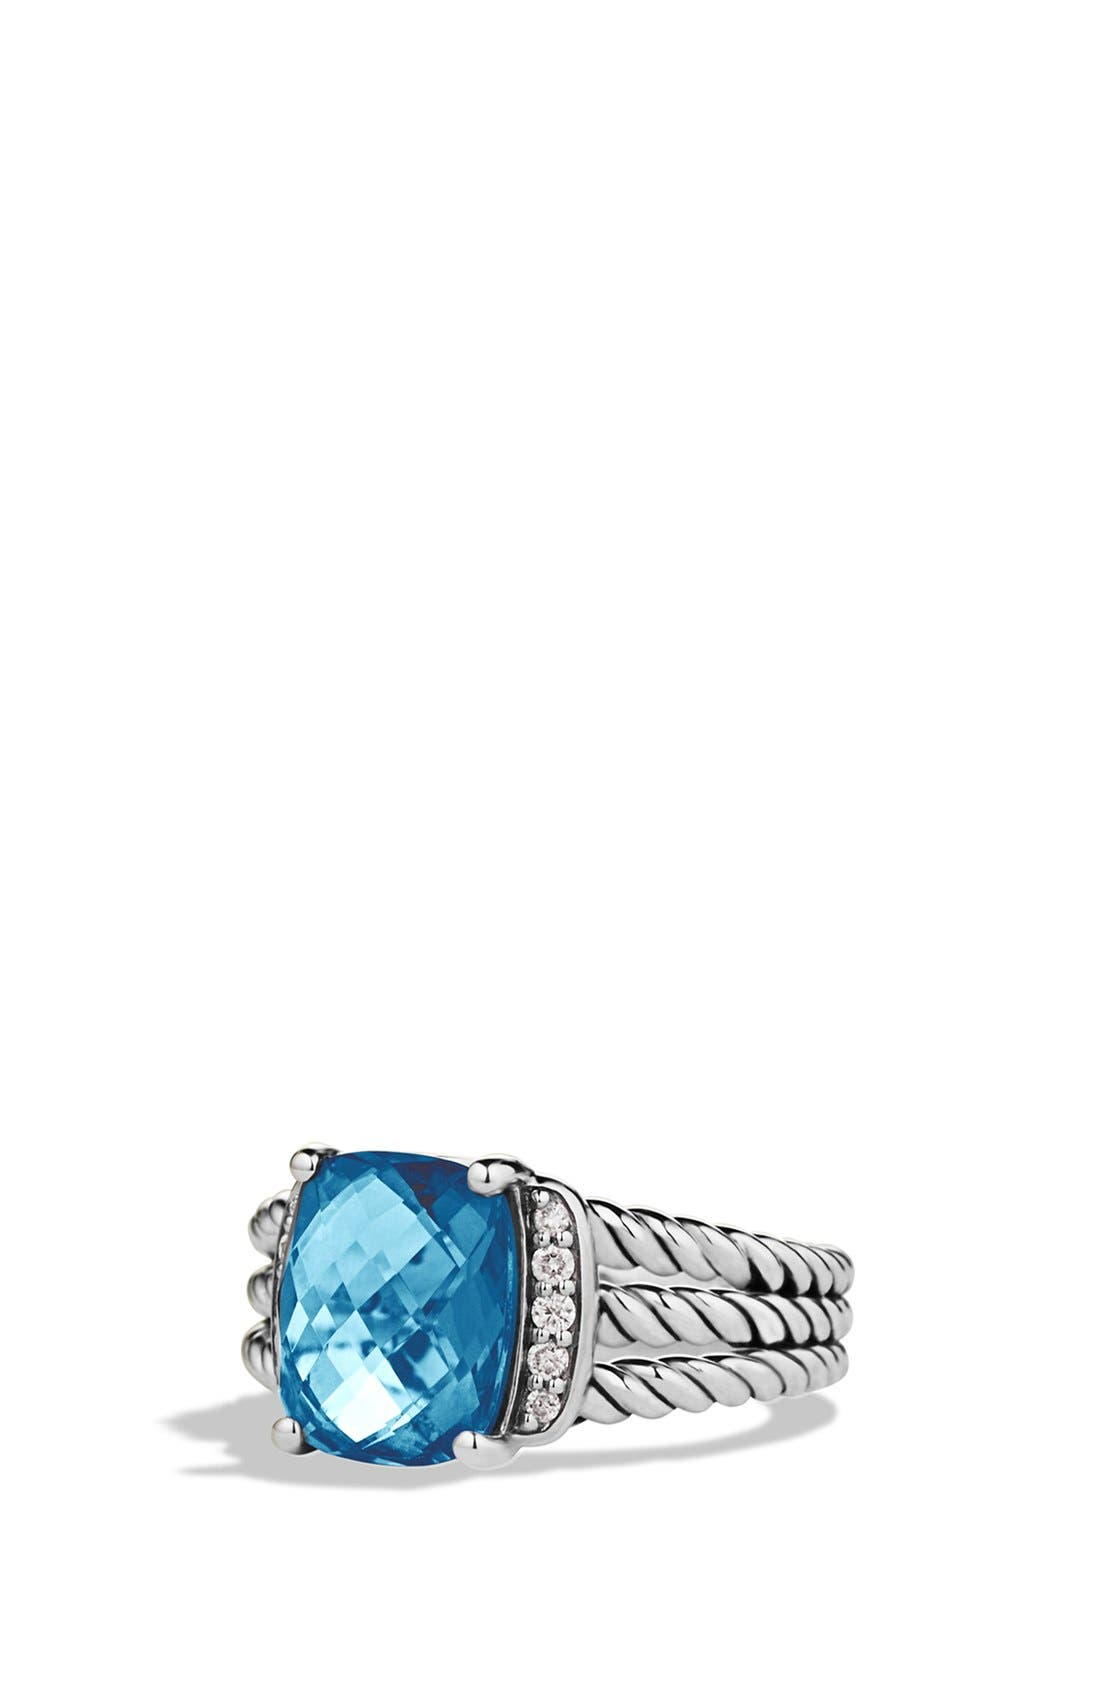 DAVID YURMAN 'Wheaton' Petite Ring with Semiprecious Stone